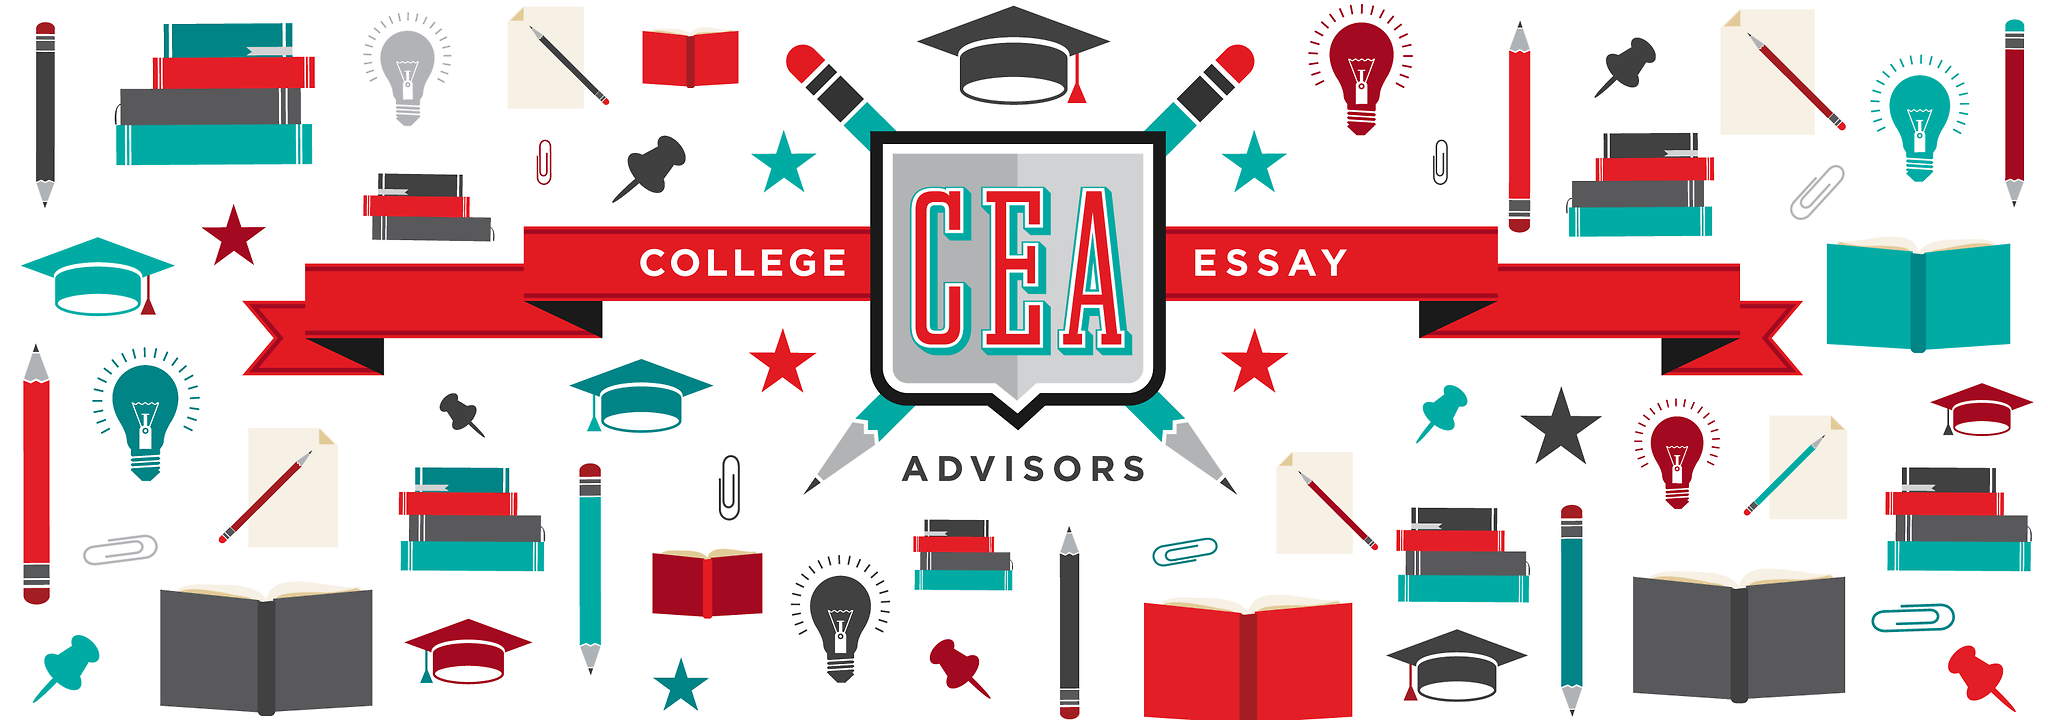 right college essay Looking forward to college visits check out reviews of colleges - public and private, from the big 10 to the ivy league, from small liberal arts schools to large state universities, including 2-year and 4-year programs .